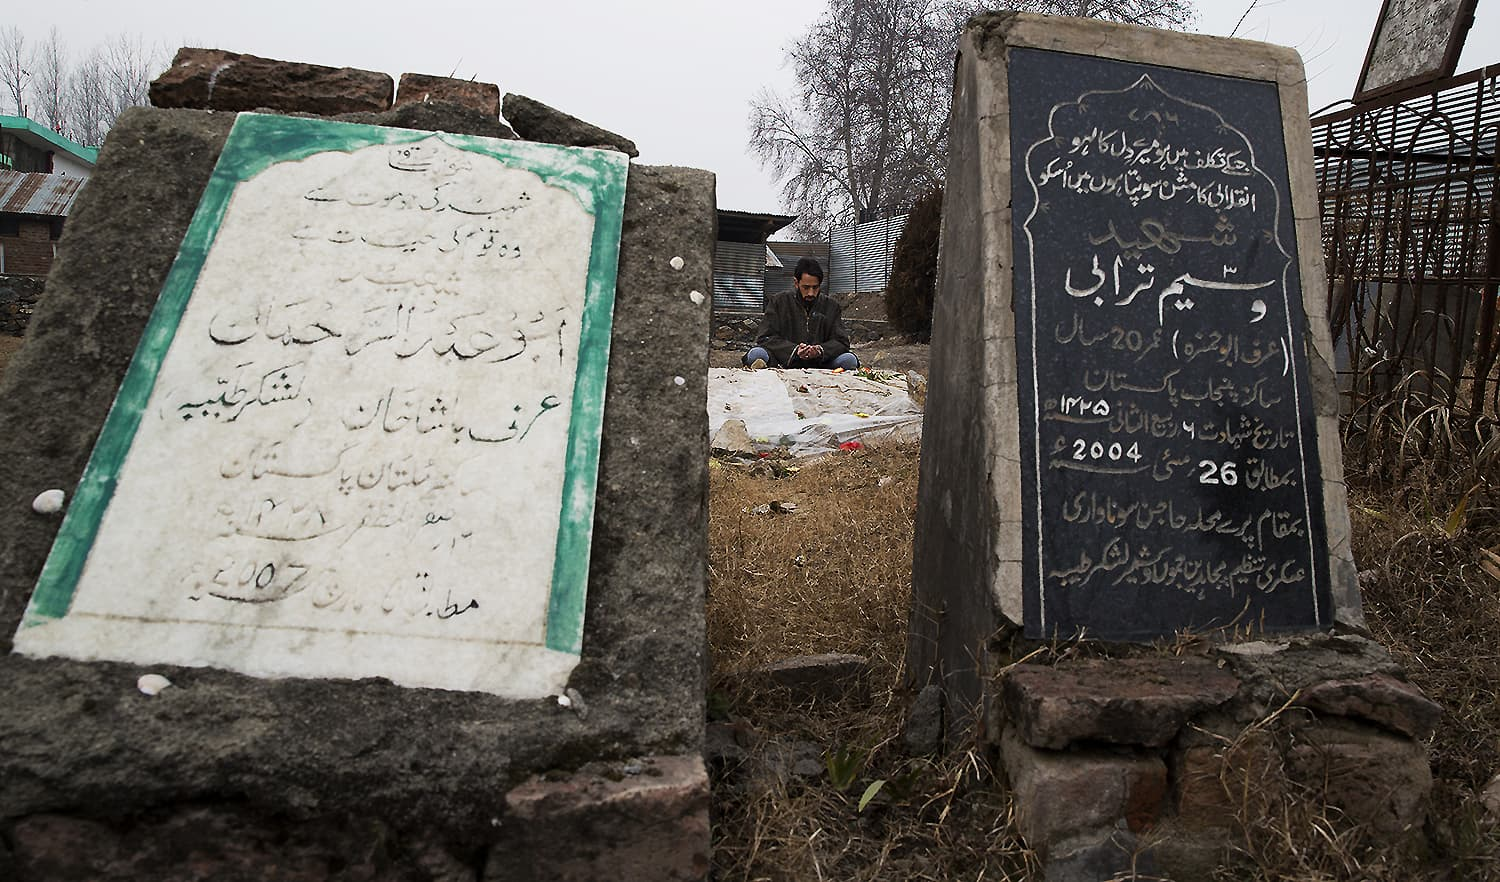 Fight against India joins two Kashmir teens in life and death